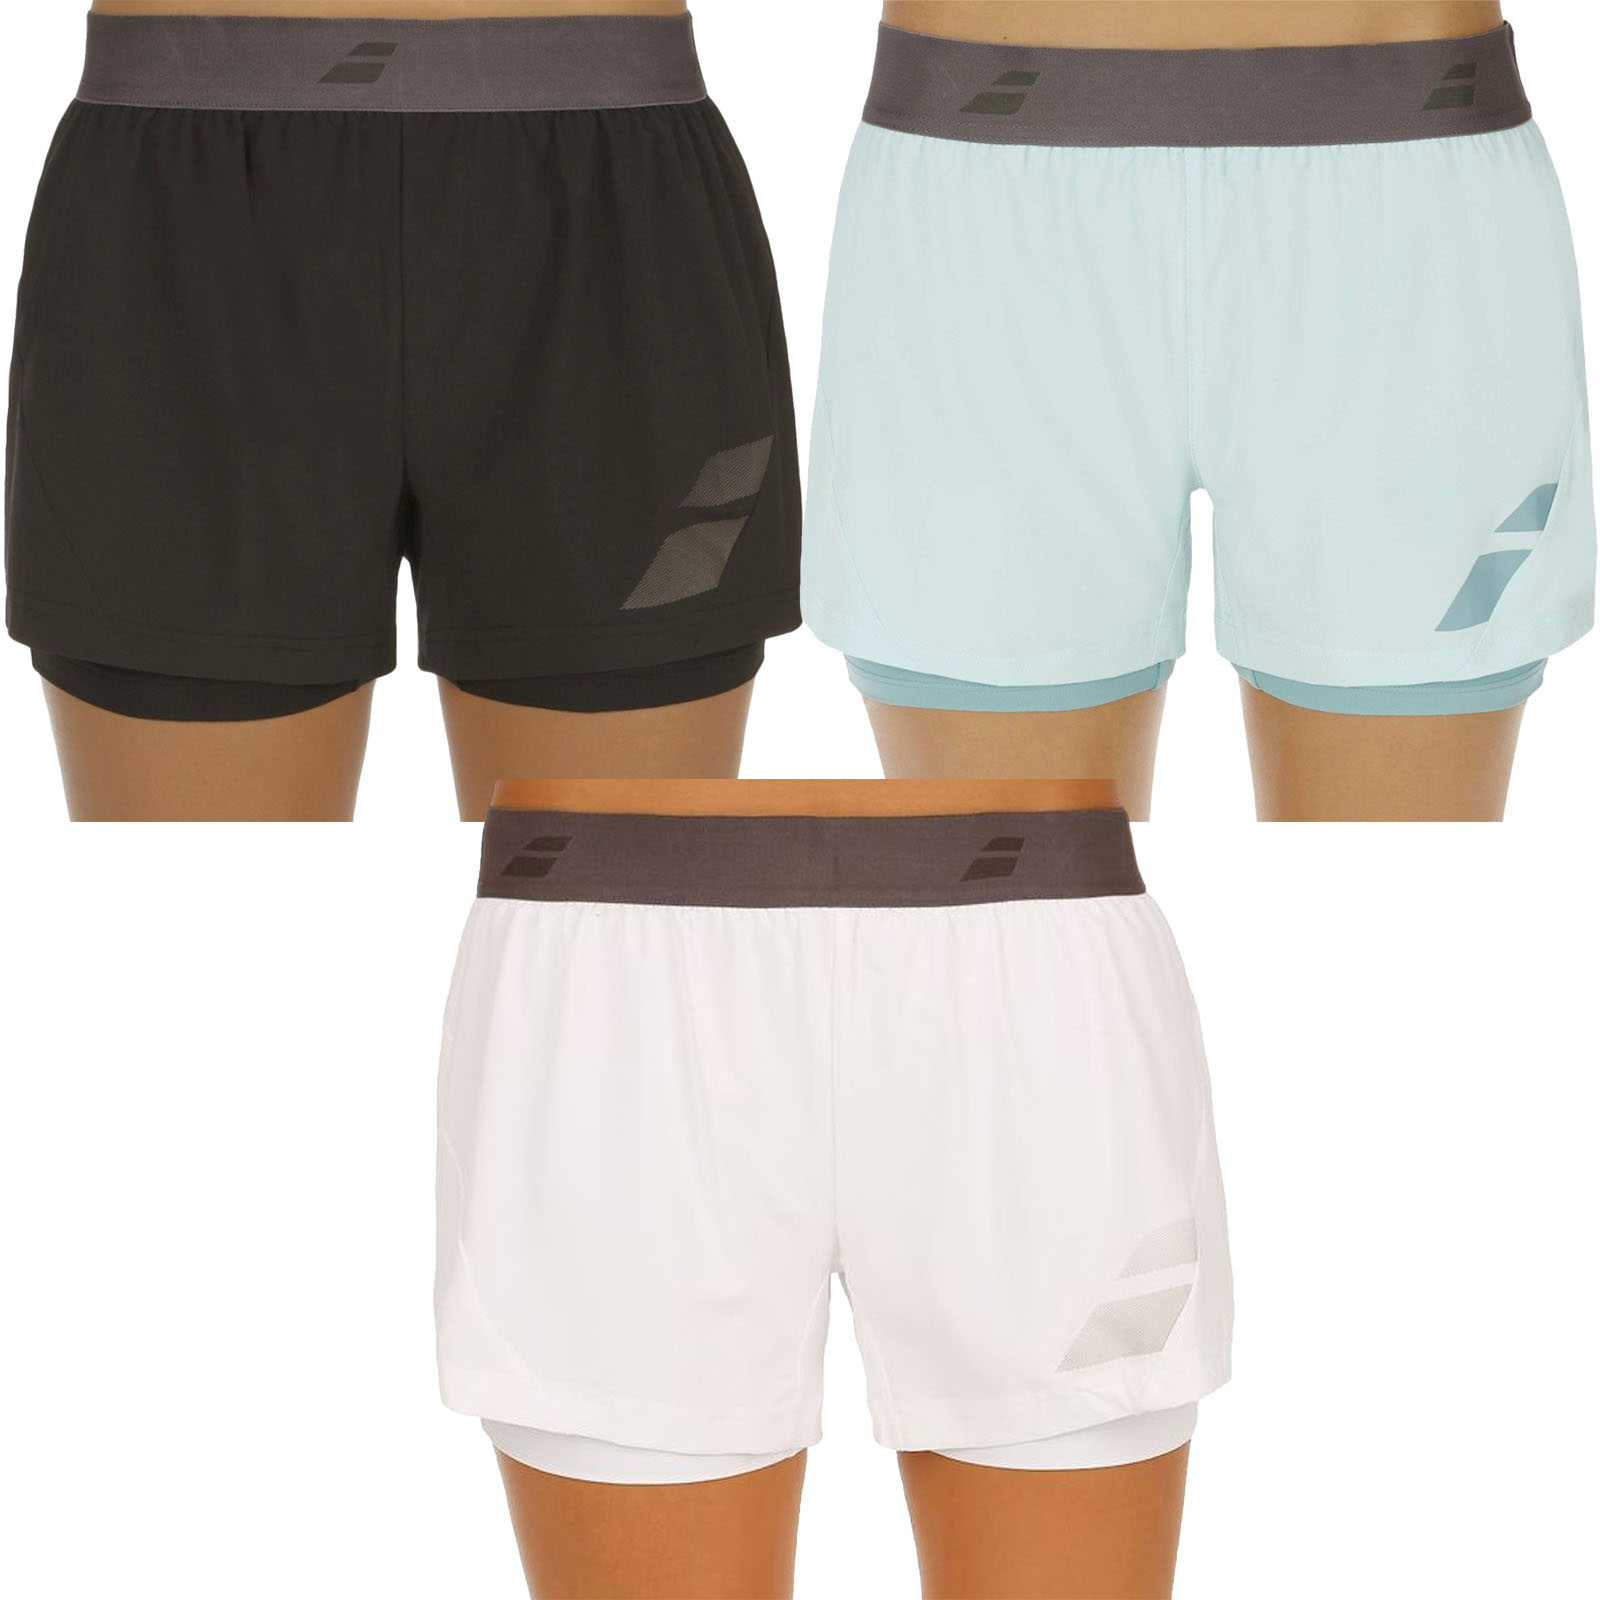 880f9709f73 Details about Babolat Womens Core Performance Tennis Sports Dual Layer Compression  Shorts